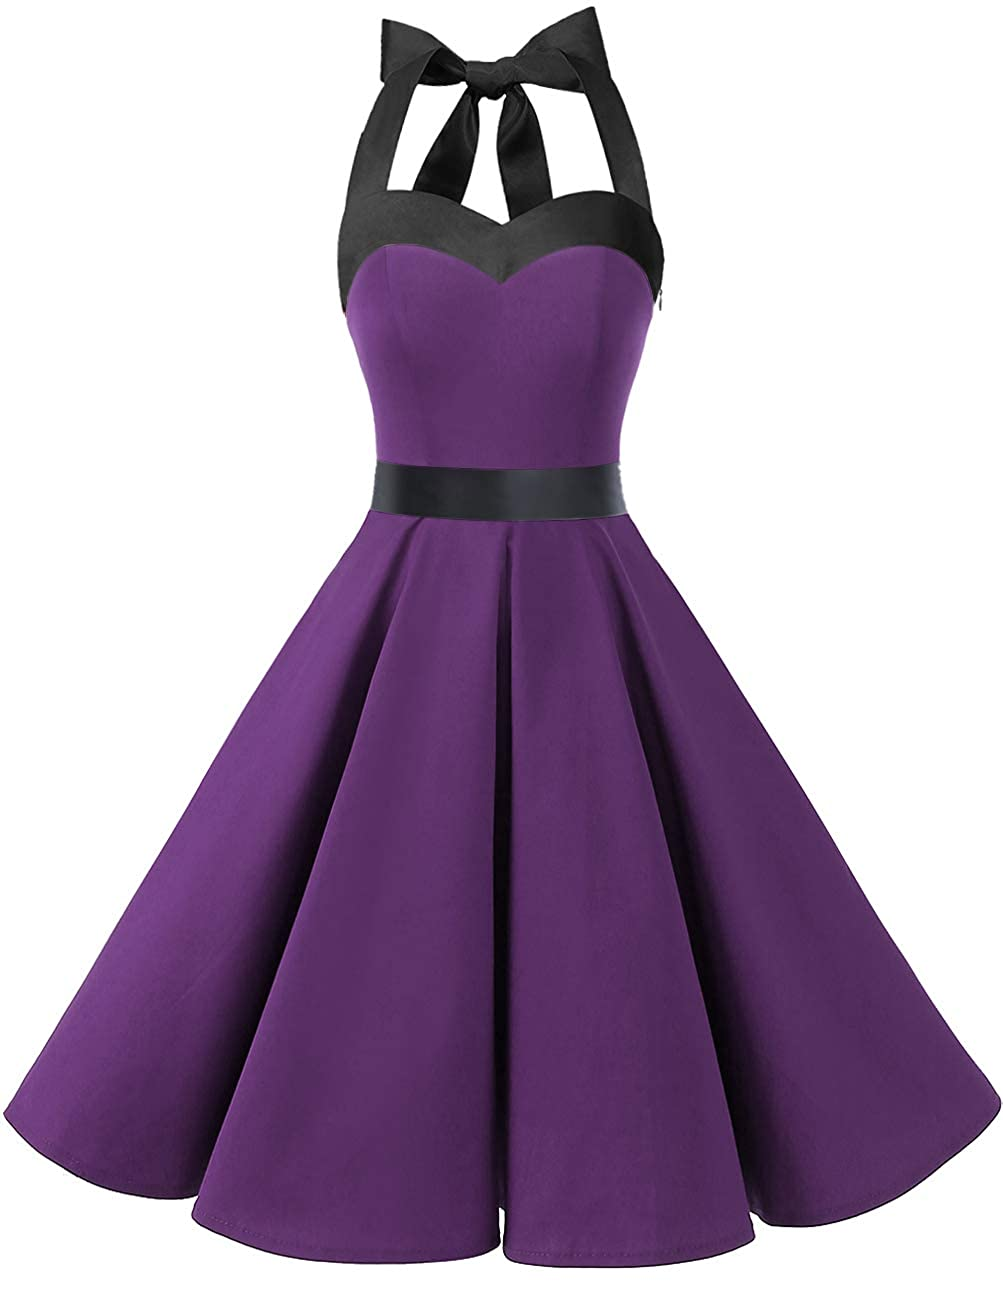 TALLA S. DRESSTELLS® Halter 50s Rockabilly Polka Dots Audrey Dress Retro Cocktail Dress Purple Black